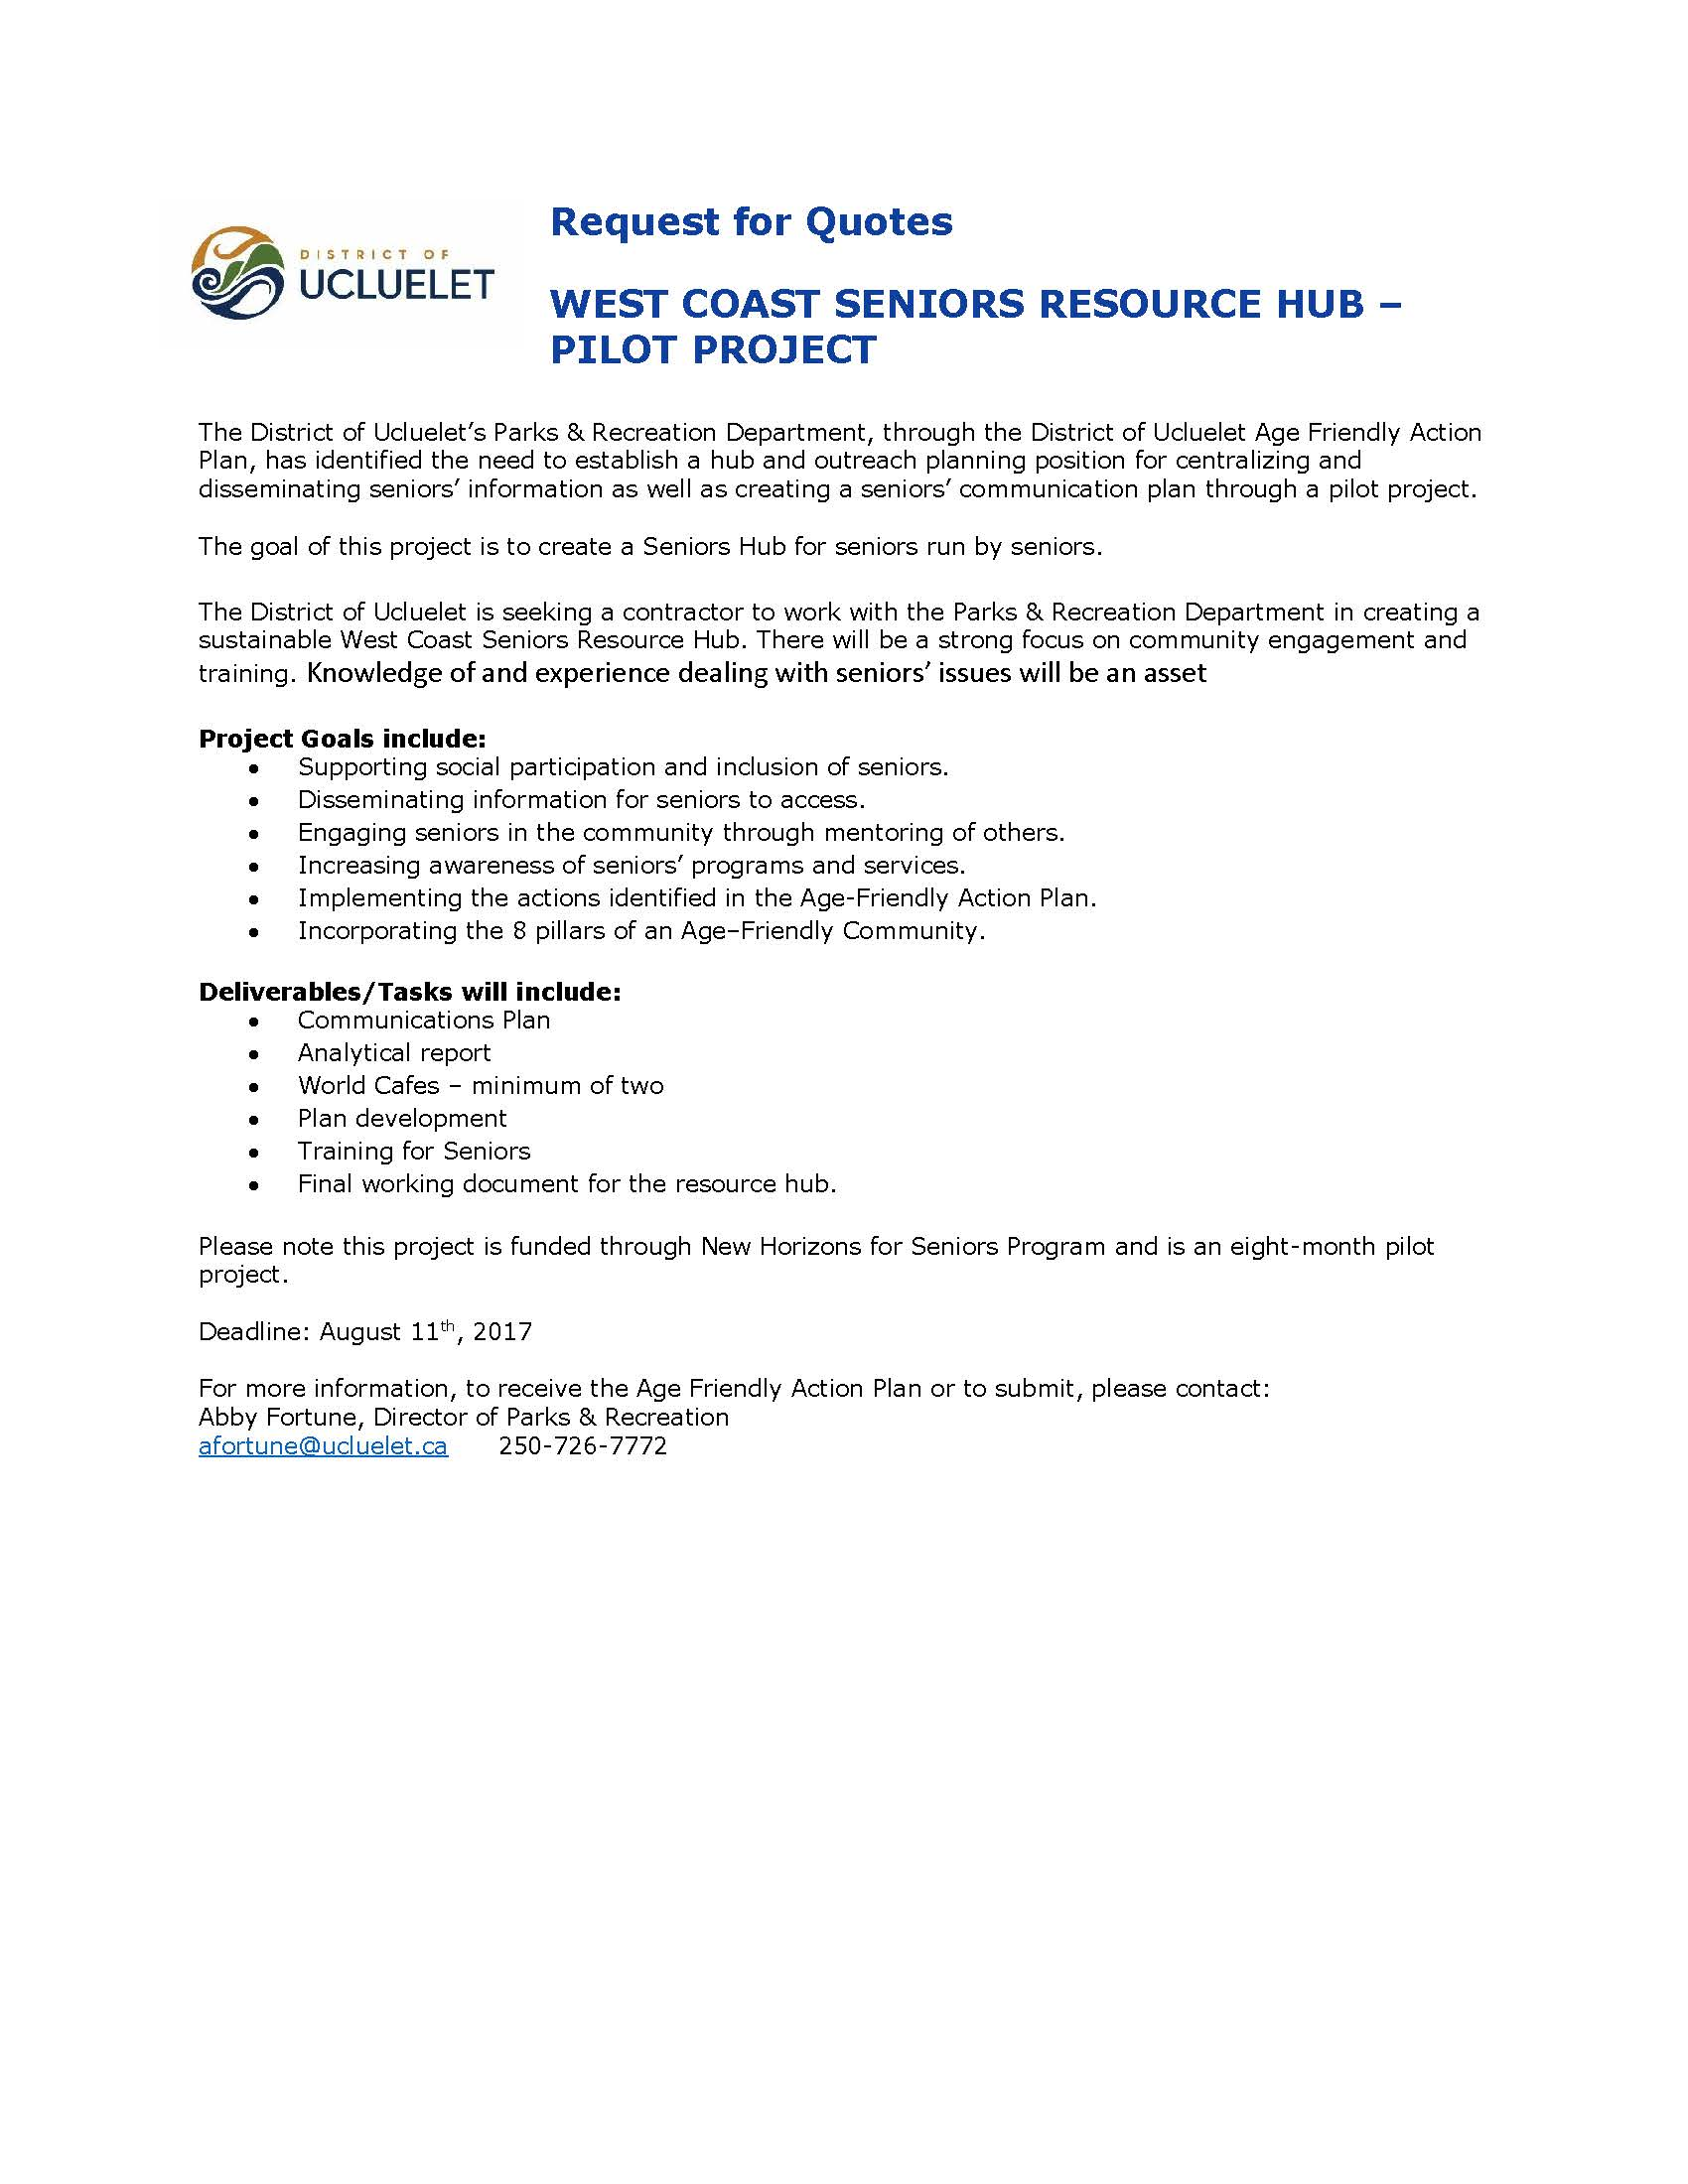 Request for Quotes Seniors Resource Hub